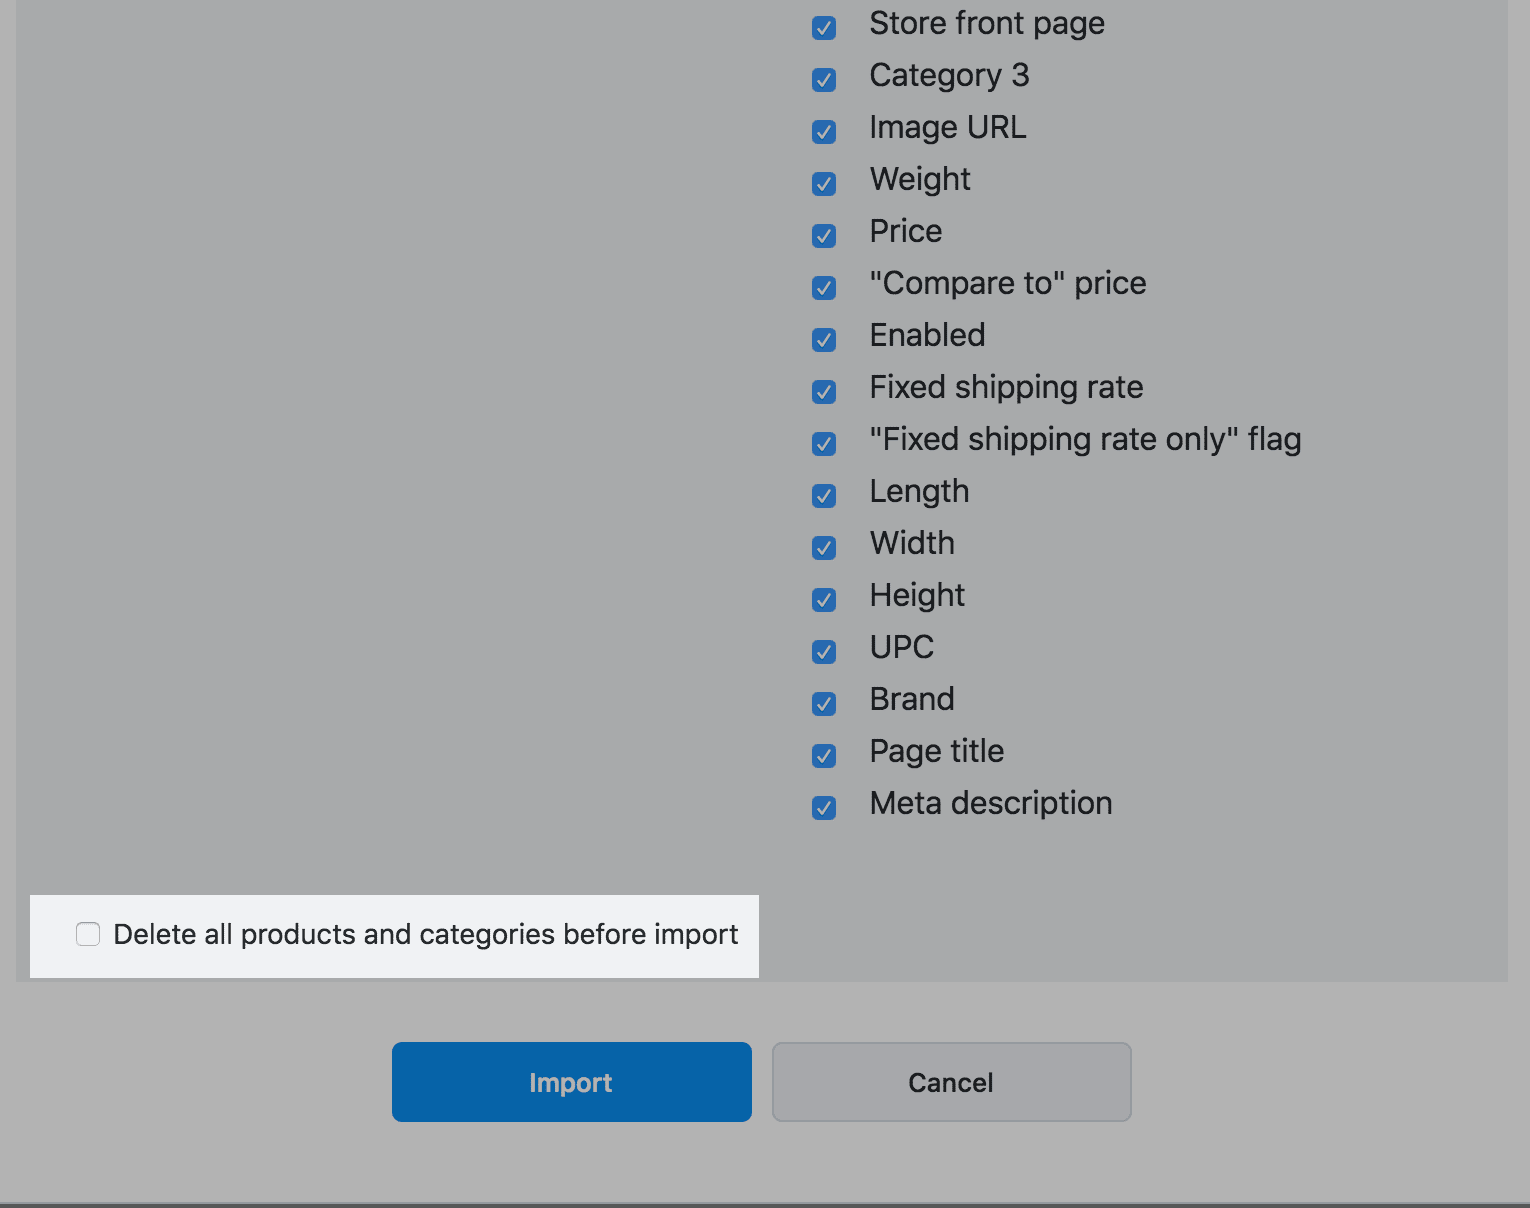 option Delete all products and categories before import